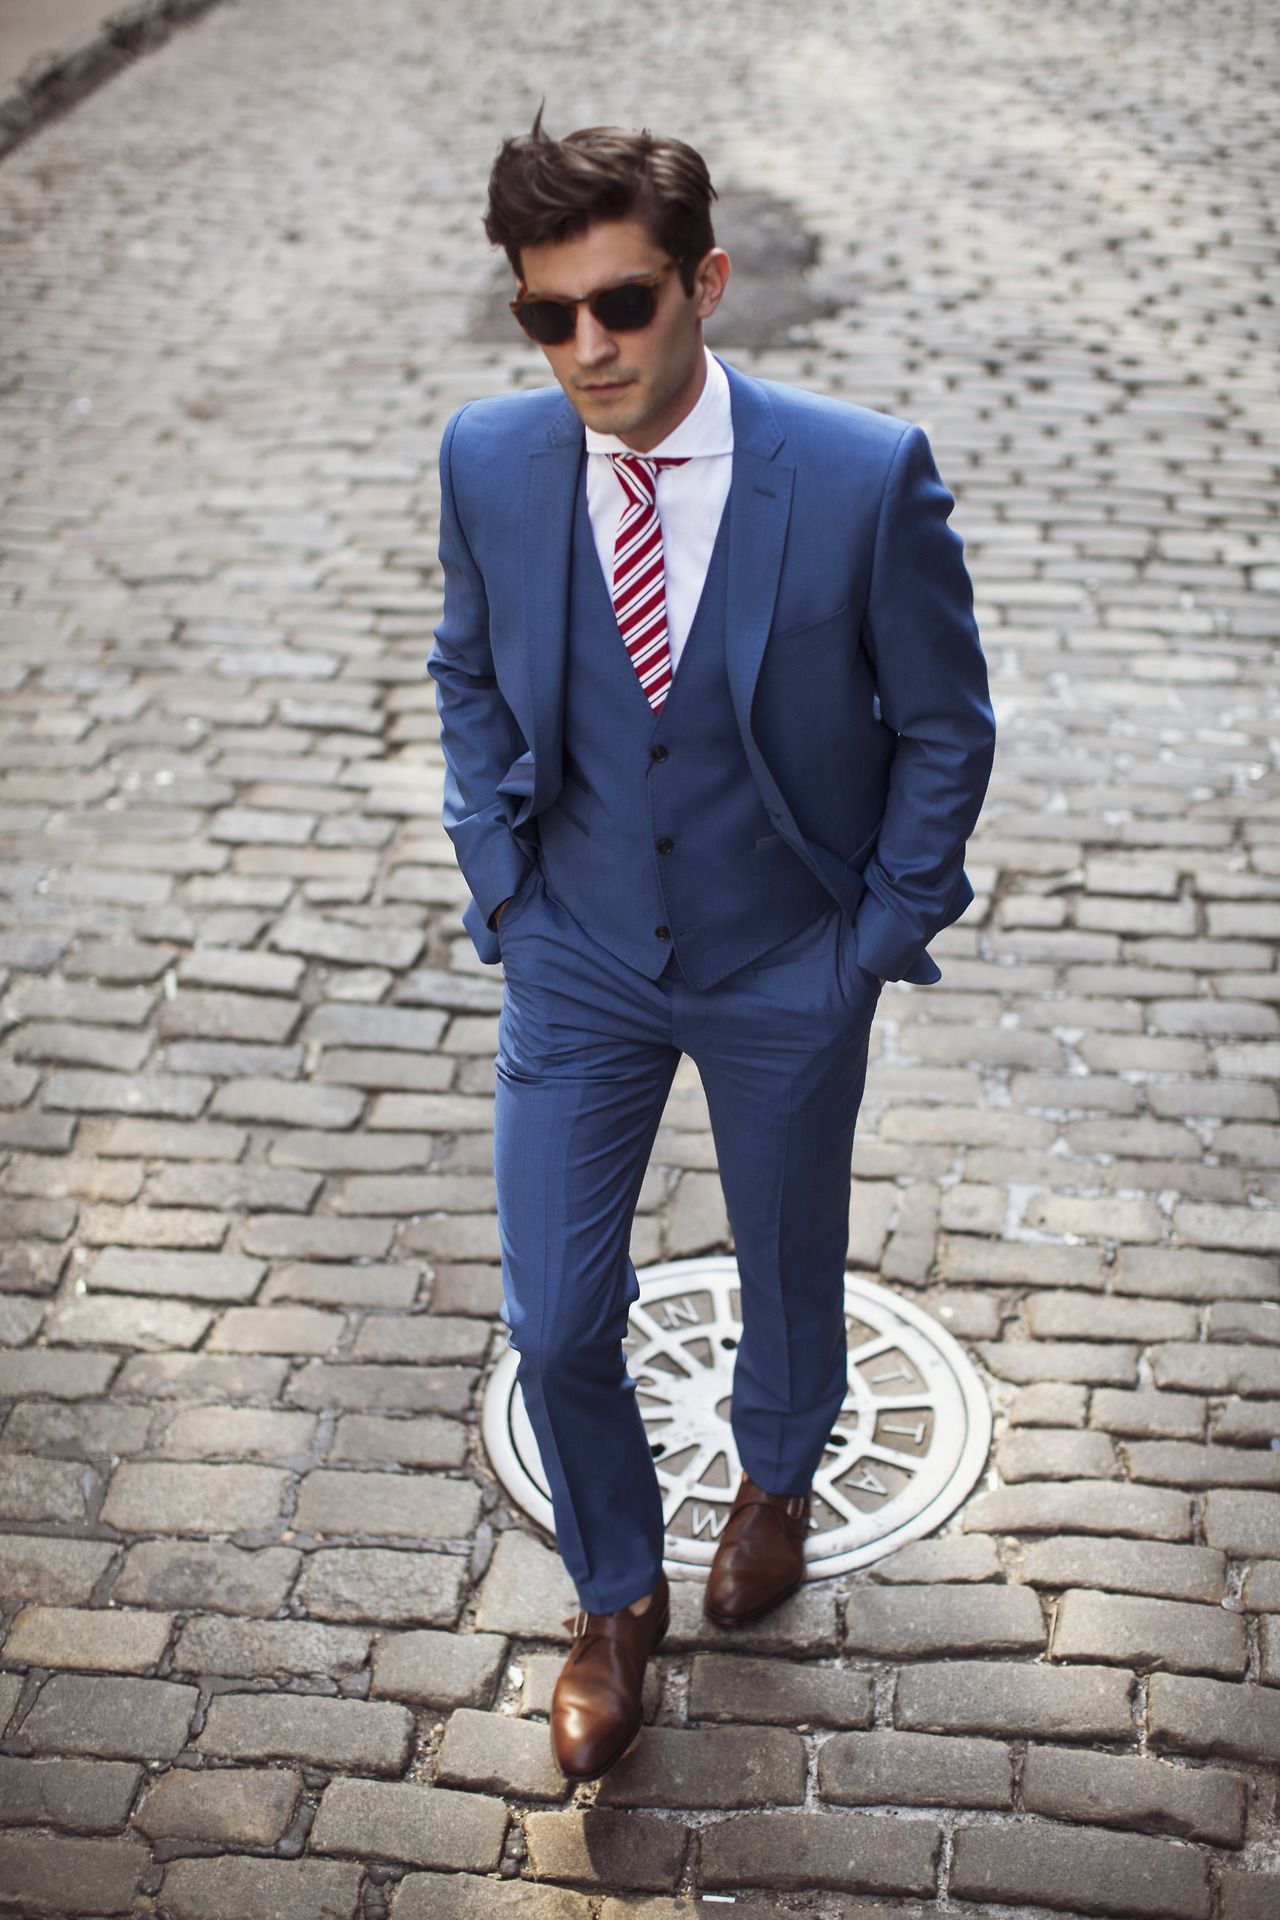 Wedding Suits For Men Inspiration For Male | Summer, Summer suits ...